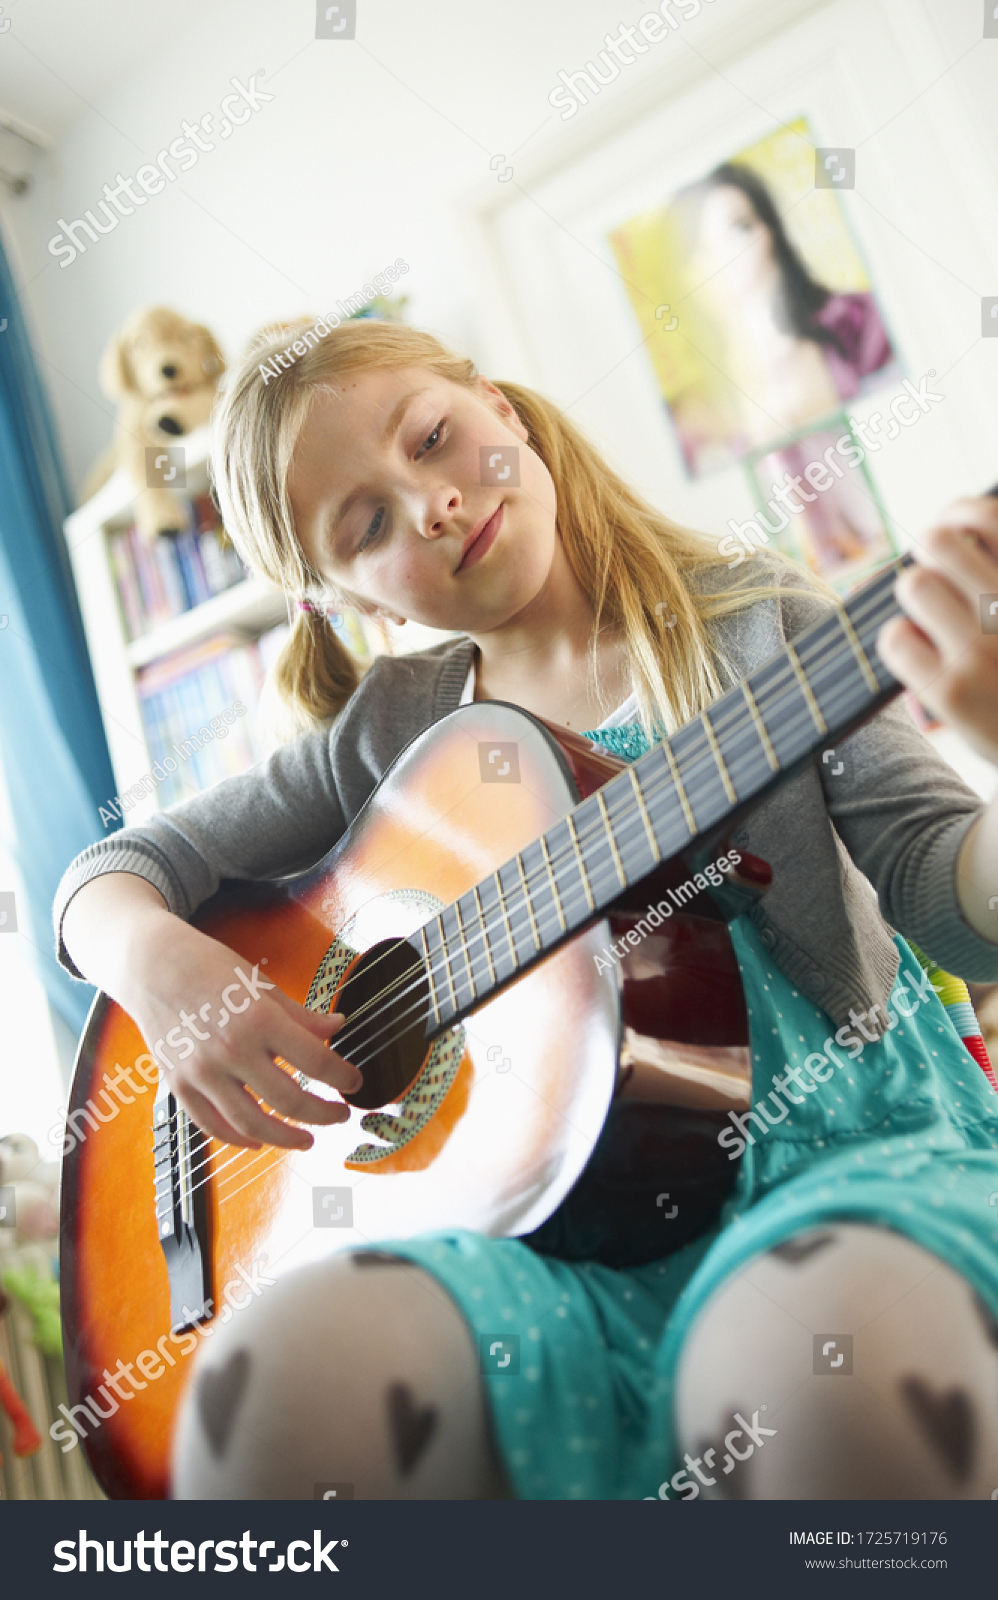 Young girl playing guitar in bedroom #1725719176